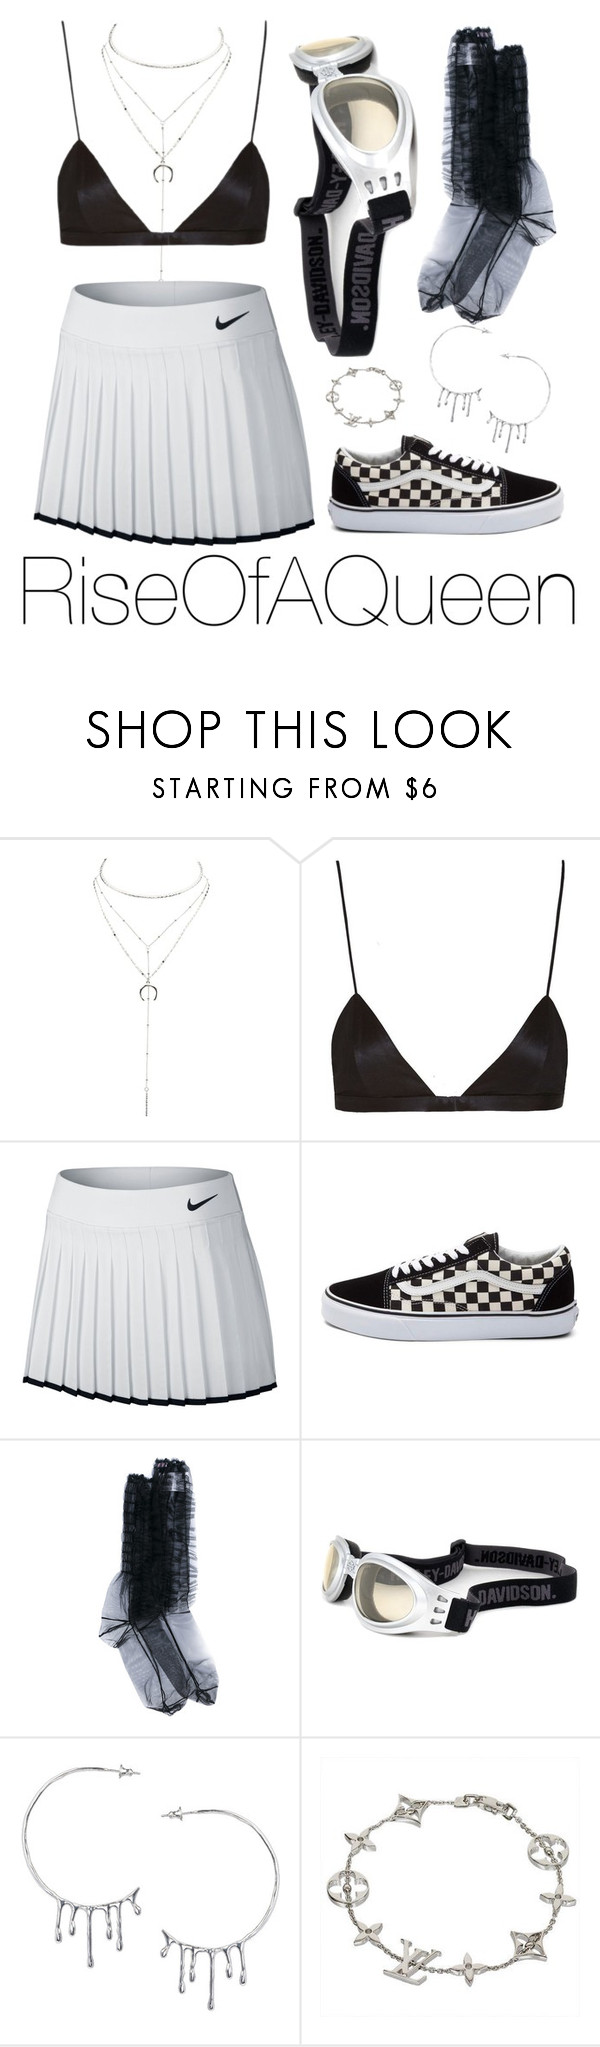 """You Don't Even Play Tennis 🙄"" by riseofaqueen on Polyvore featuring Charlotte Russe, NYX, NIKE, Vans, MSGM, Harley-Davidson, Annika Burman and Louis Vuitton"